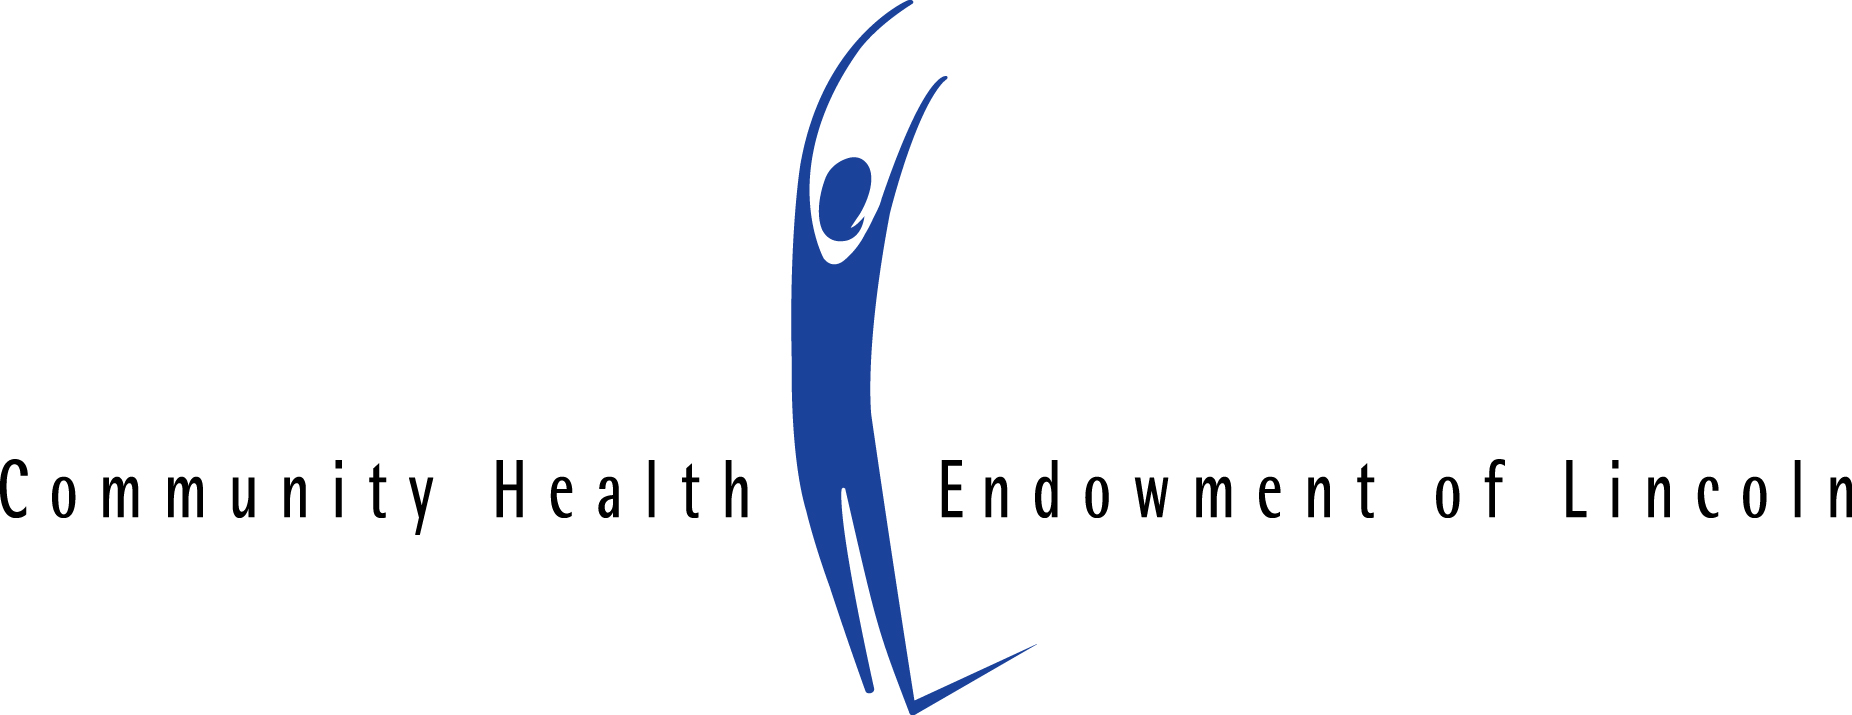 Community Health Endowment of Lincoln